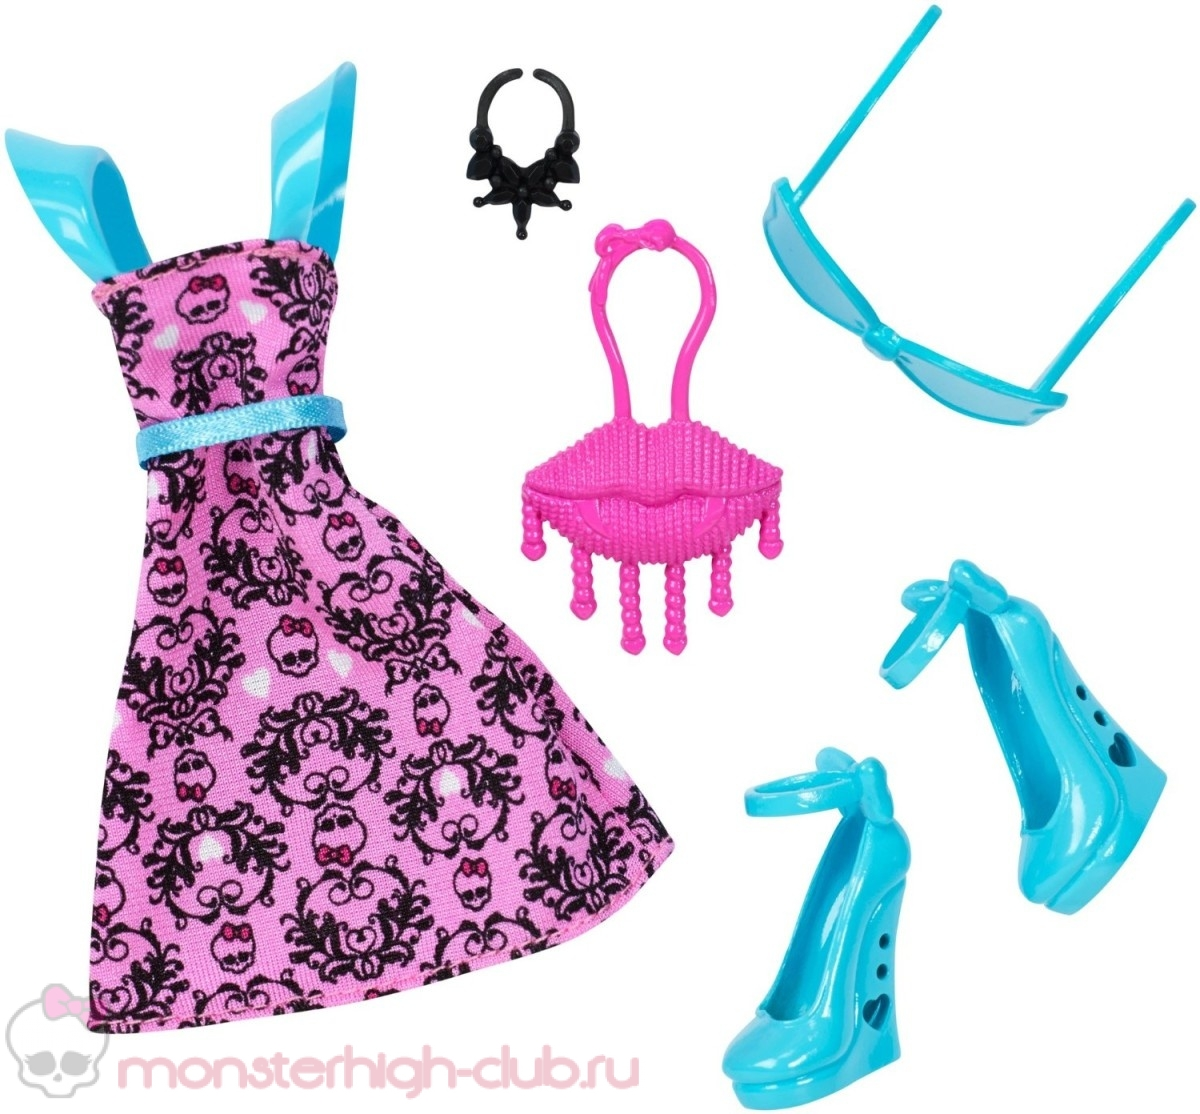 monster_high_complete-look_draculaura_fashion_pack-new (1)